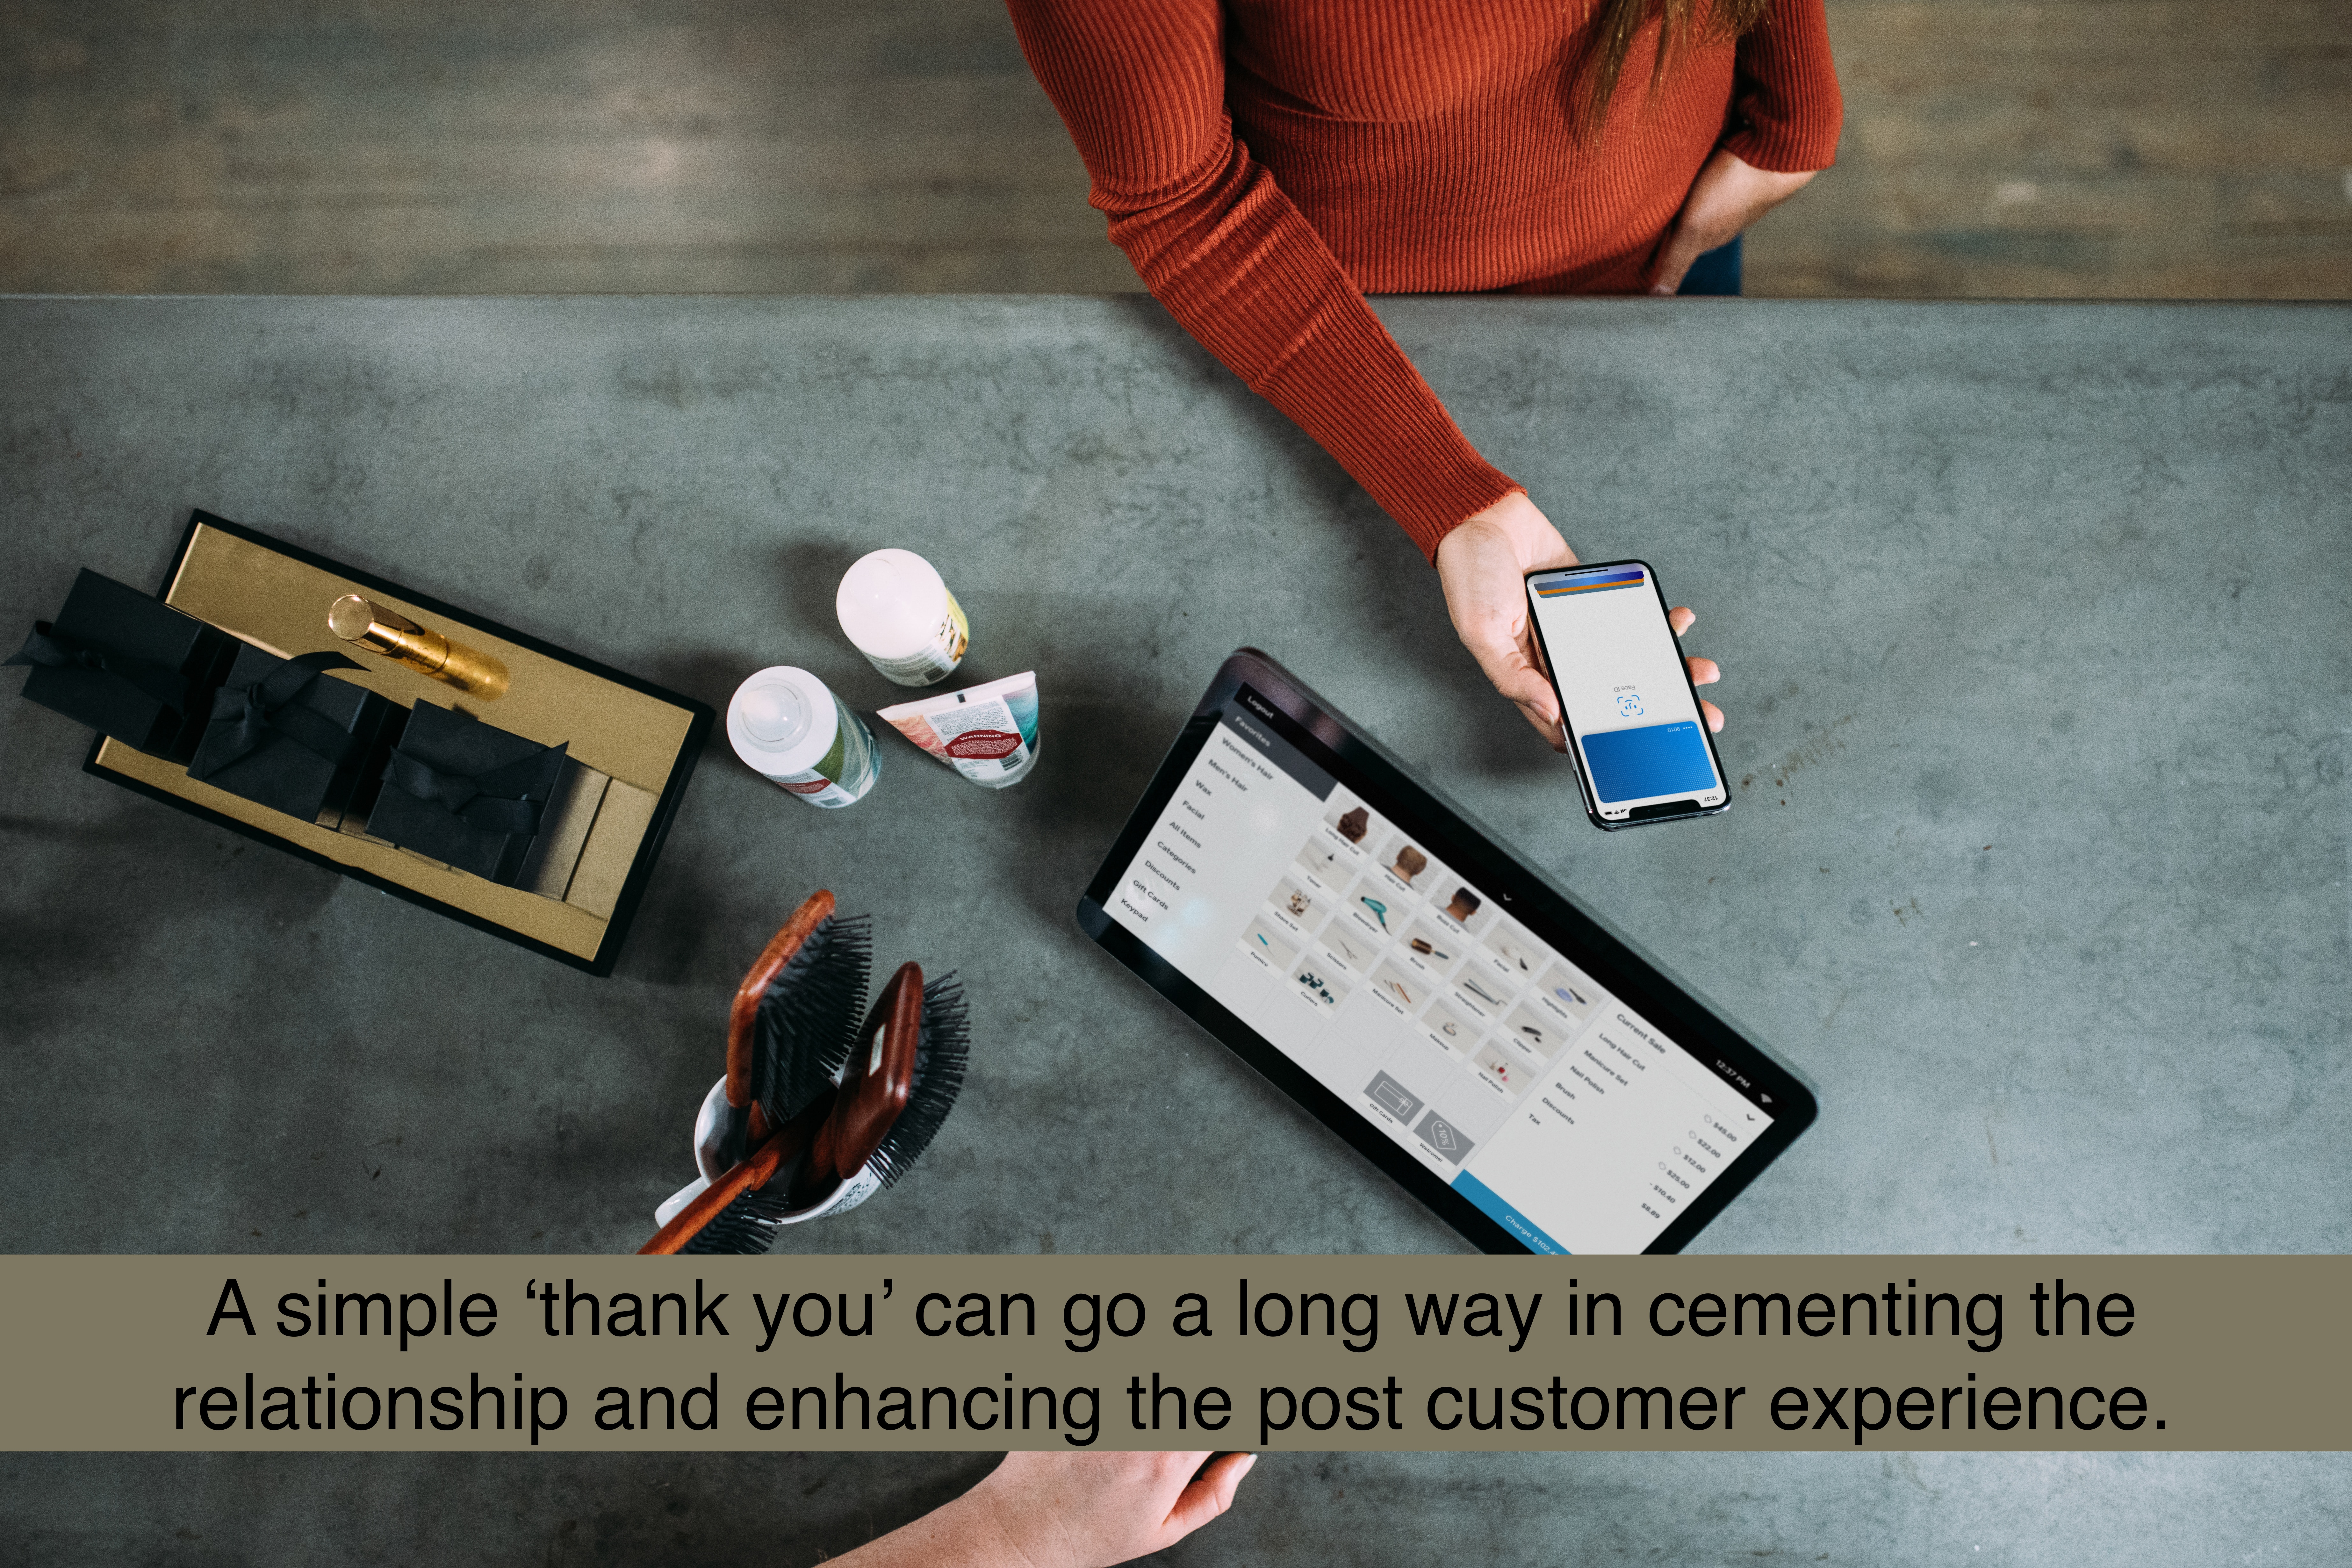 A simple 'thank you' can go a long way in cementing the relationship and enhancing the post customer experience.